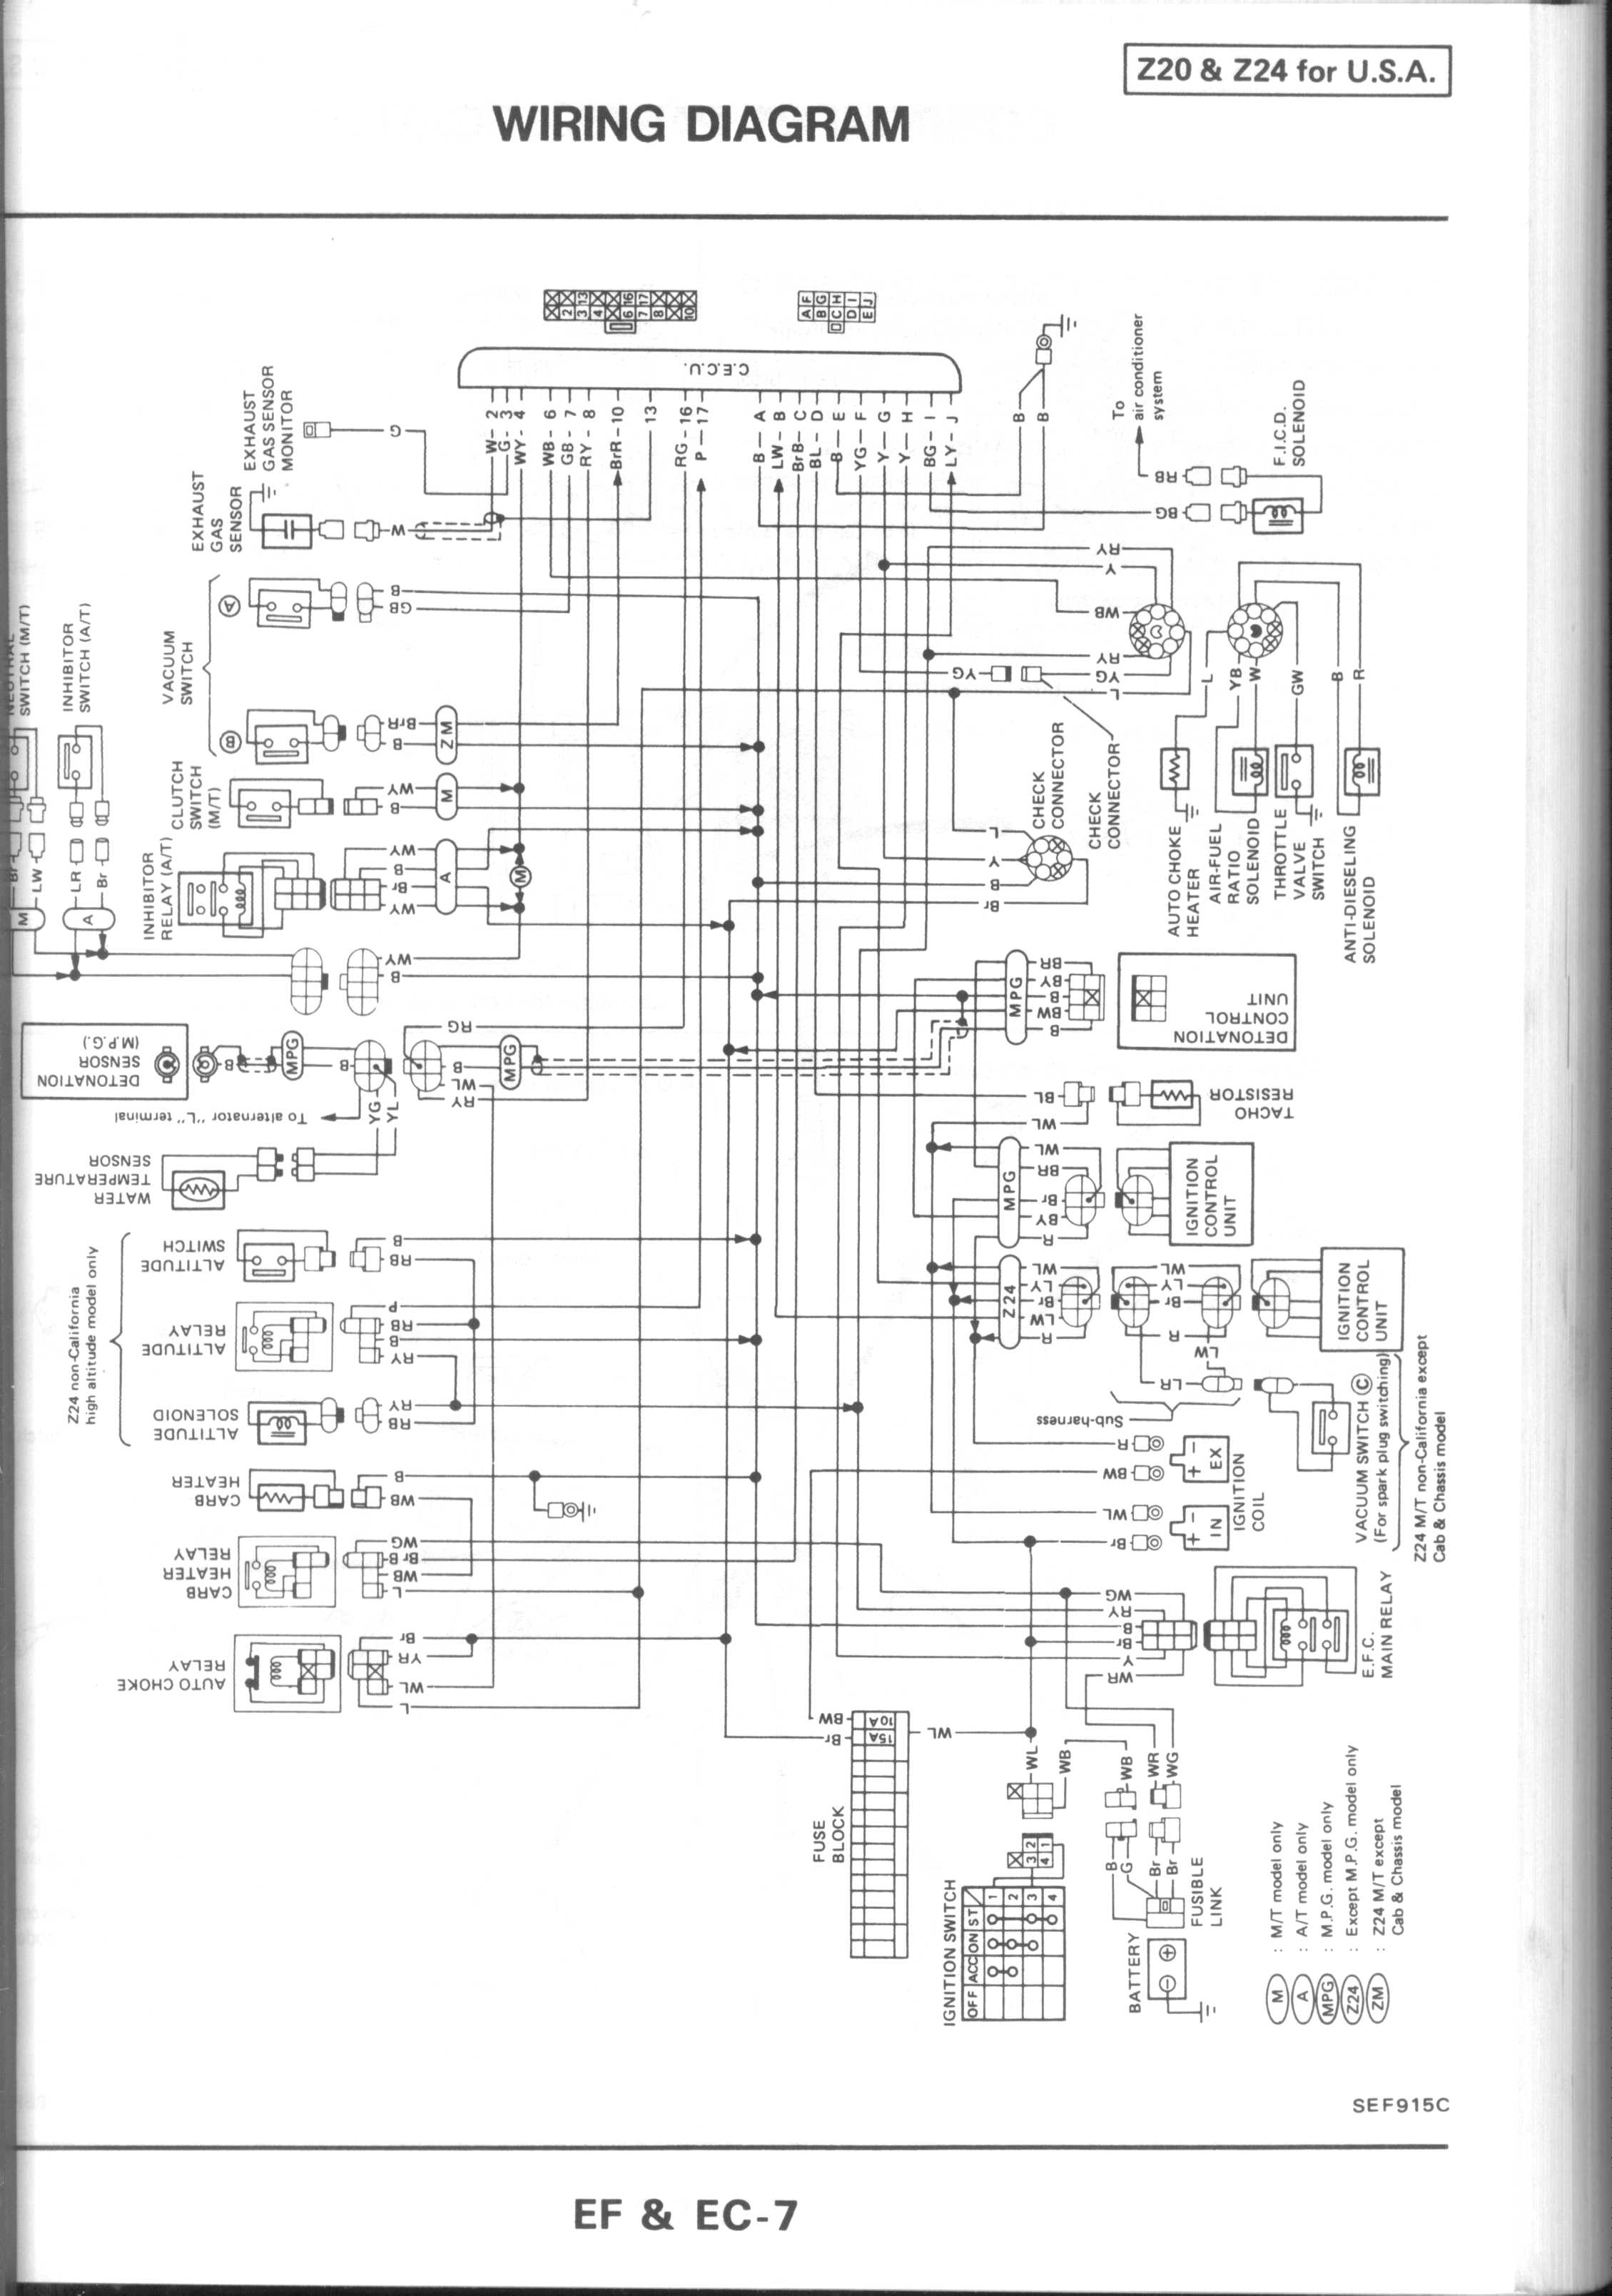 Nissan Z24 Coil Diagram Wiring Data 88 Chevy Truck Ignition Diagrams Schematic Pickup Harness Sentra